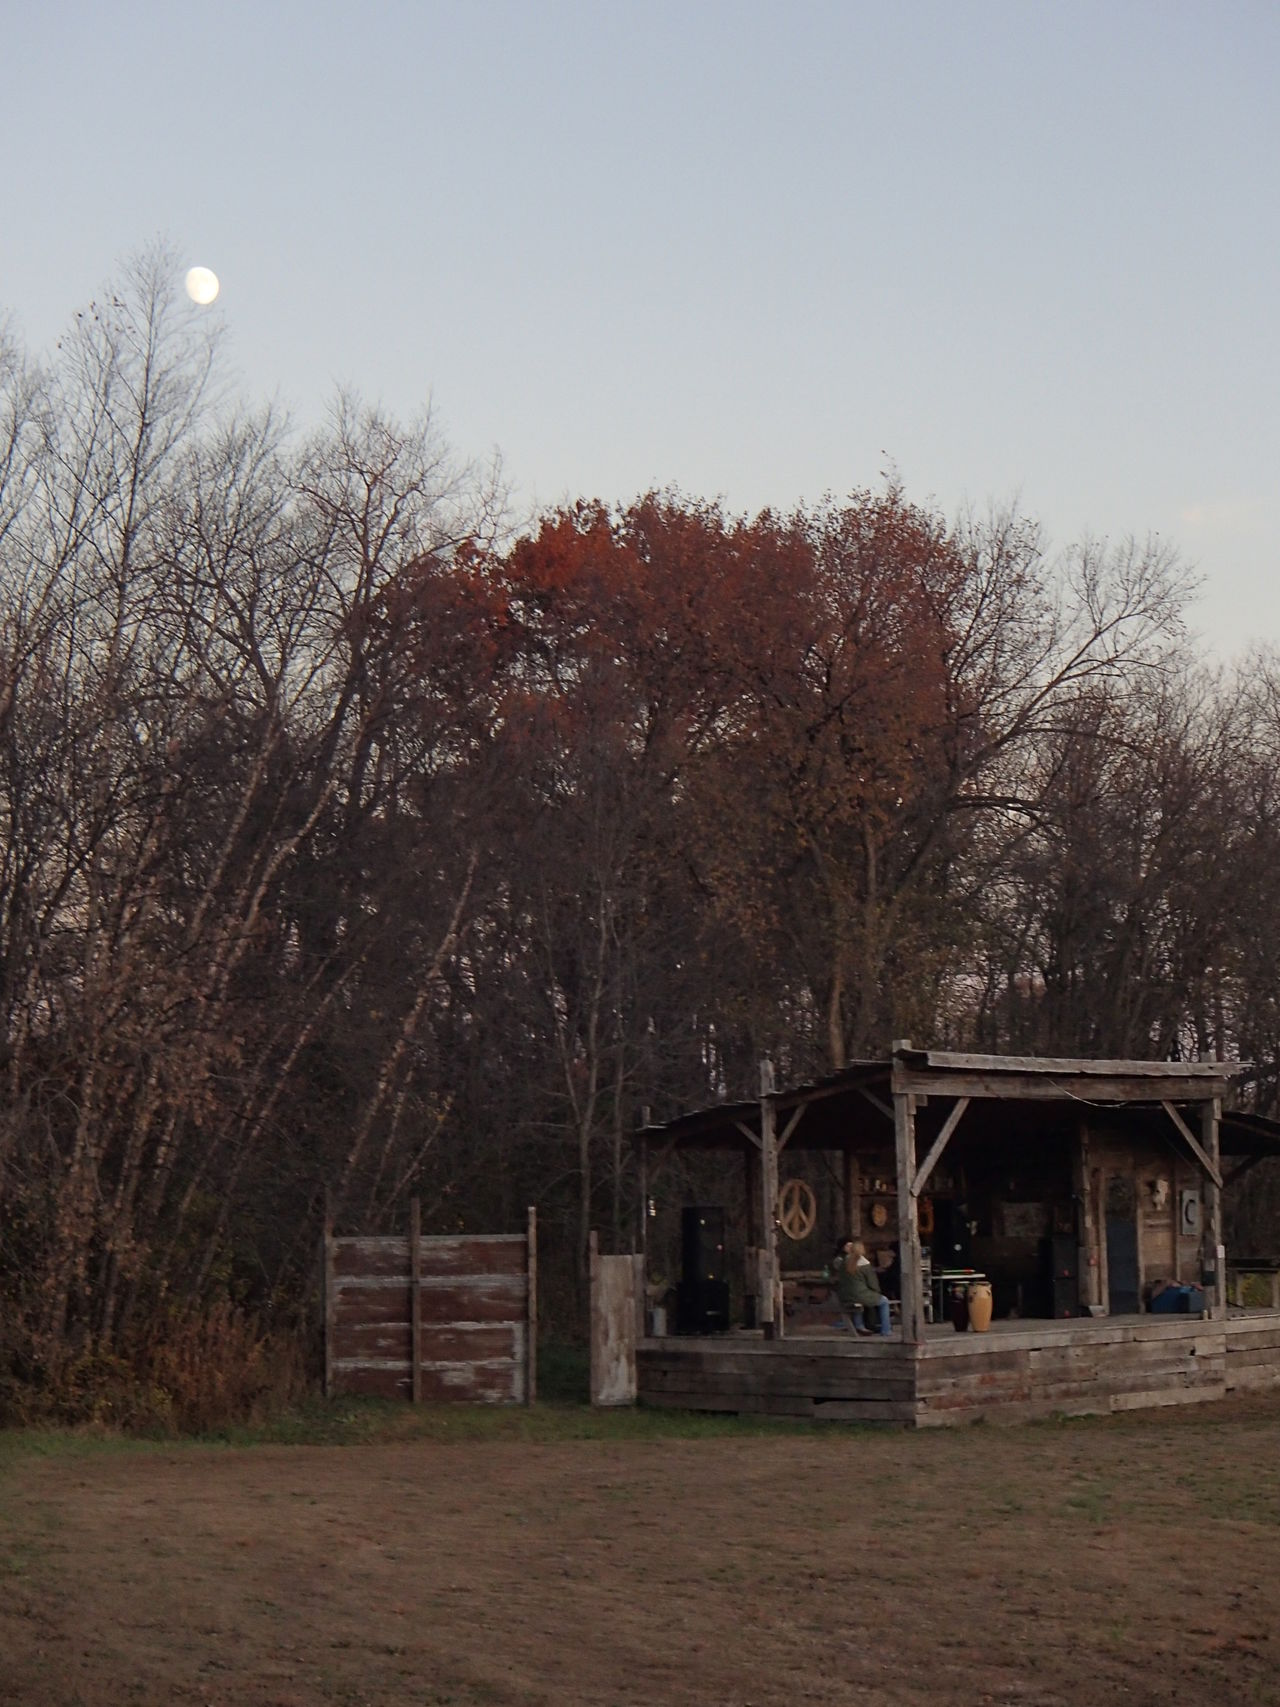 Architecture Building Exterior Built Structure Clear Sky Growth Moon Nature No People Outdoors Recycled Barn Wood Remote Sky Solitude Stage - Performance Space Tranquility Tree